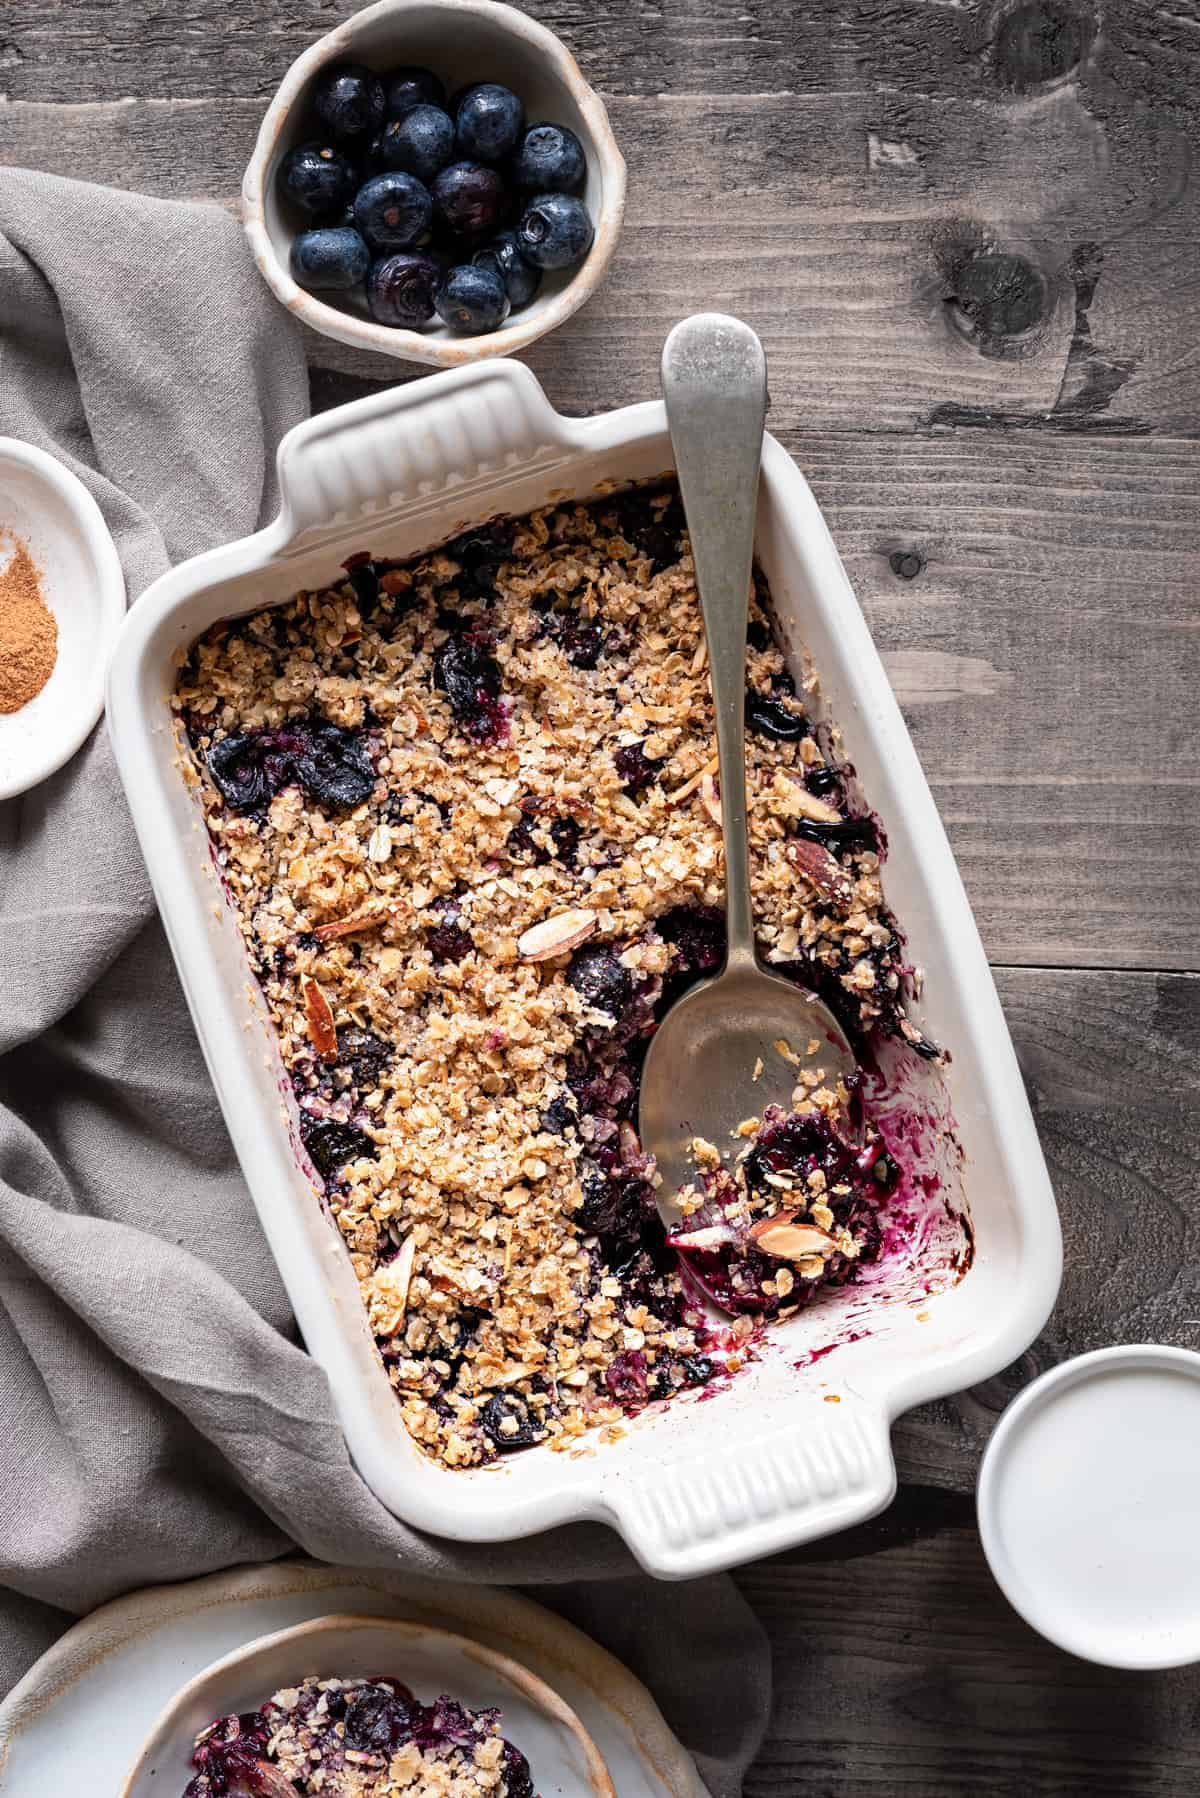 Blueberry crisp in rectangular ceramic dish with a spoon, cream and some blueberries on side.